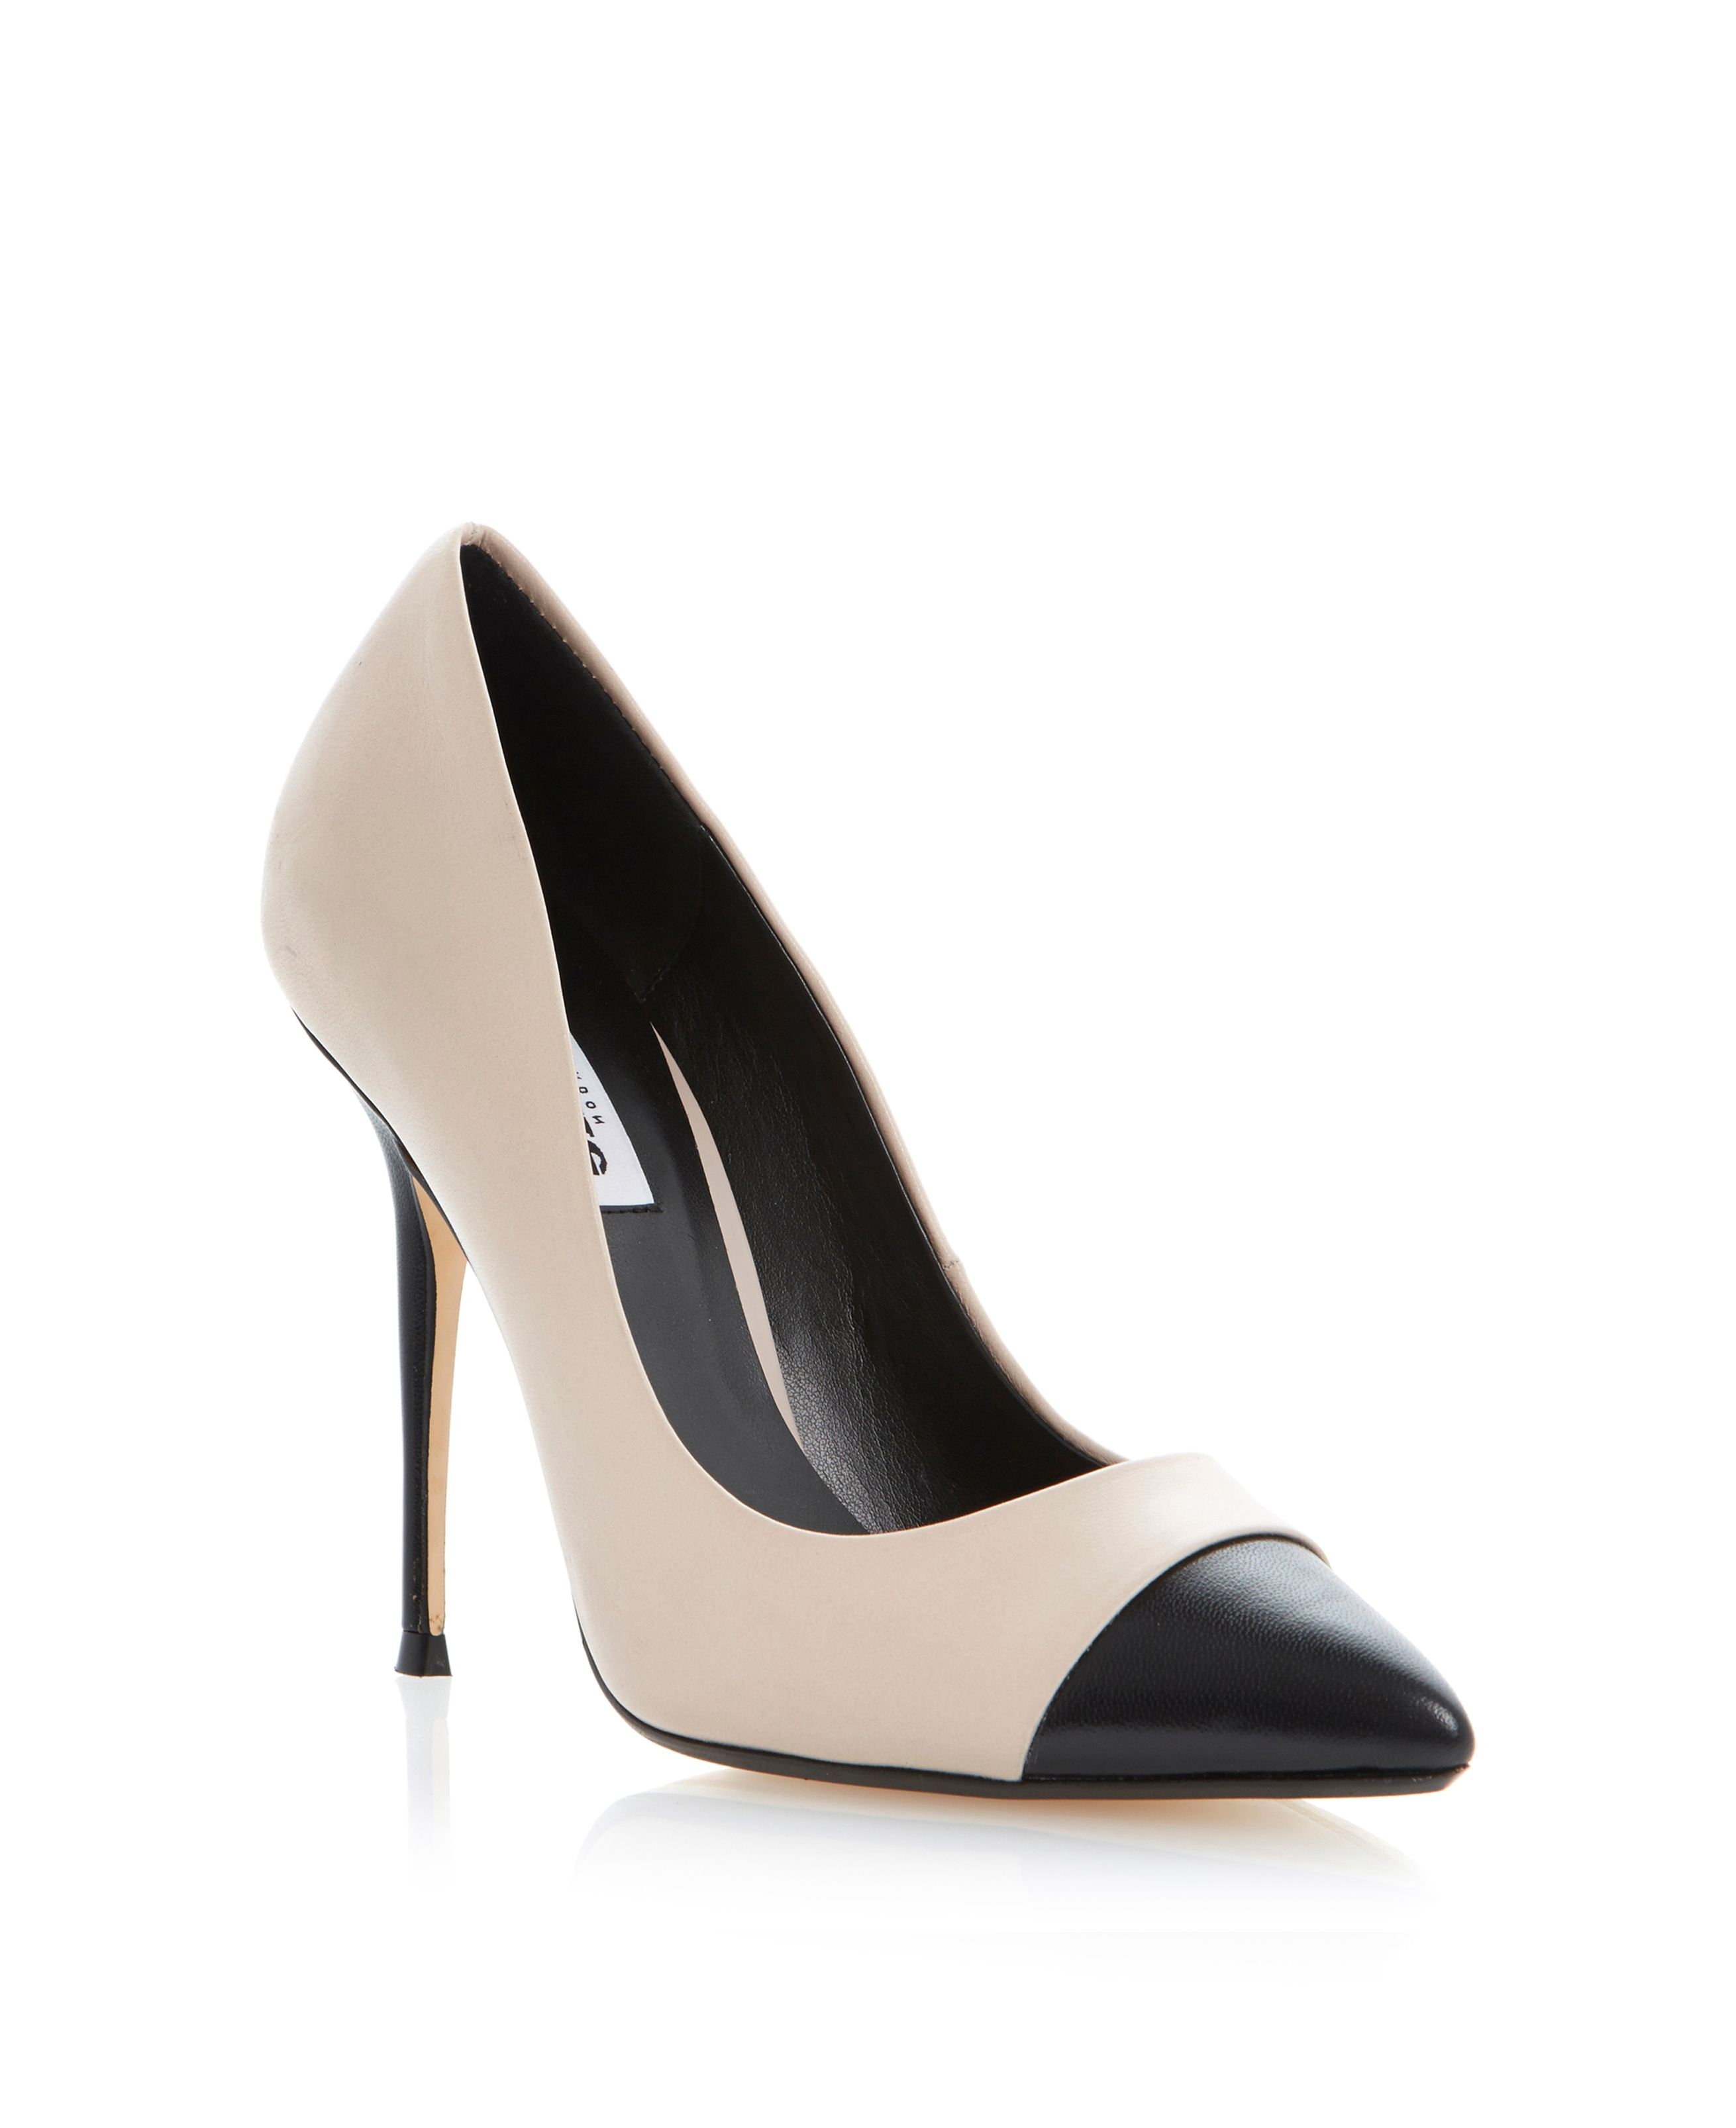 Alesha contrasting pointed toe court shoes